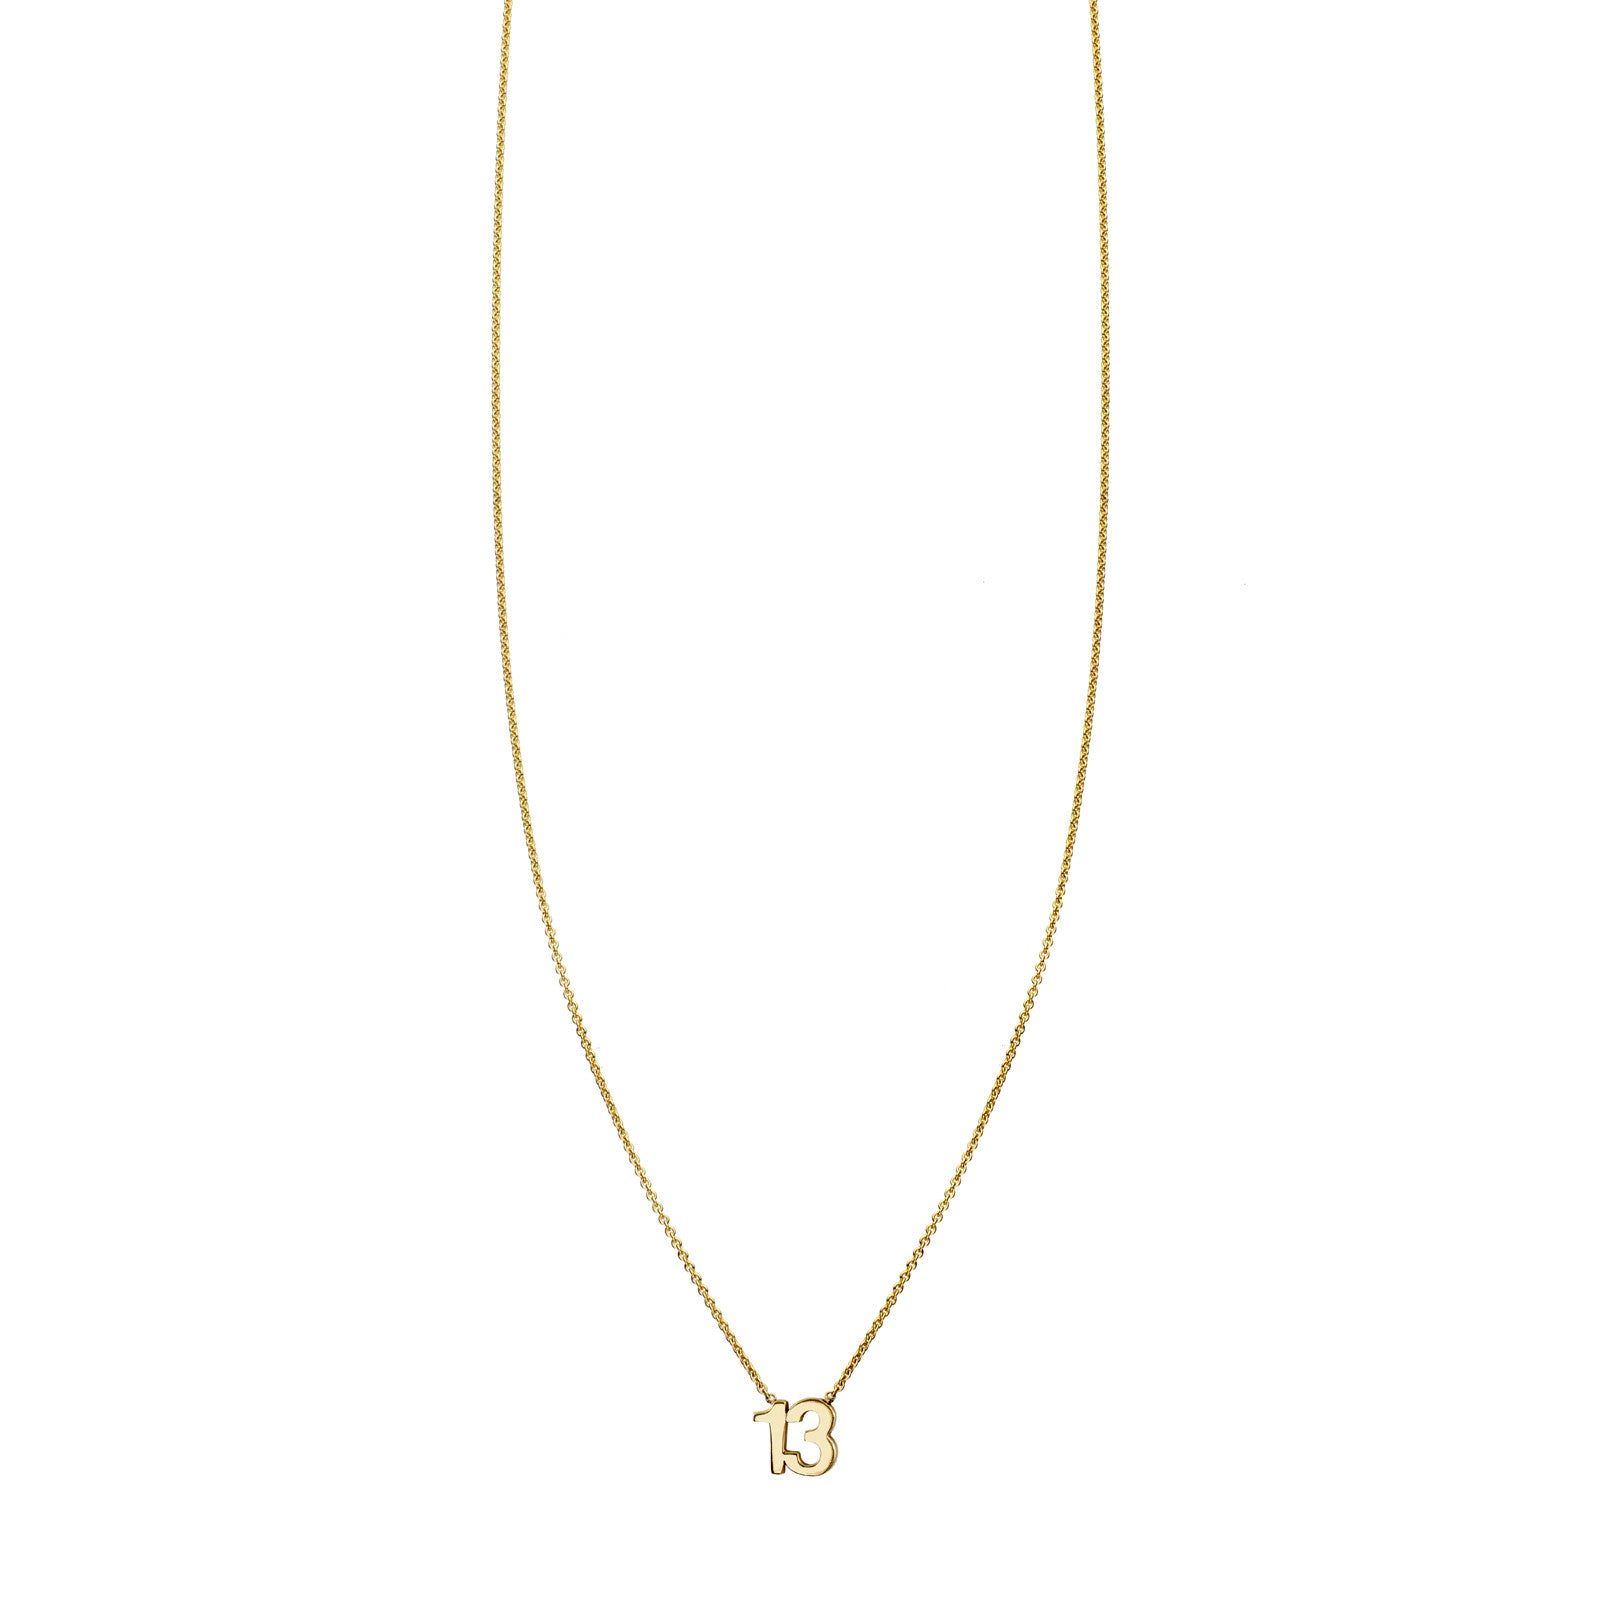 Image of a Gold Number 13 Charm Necklace